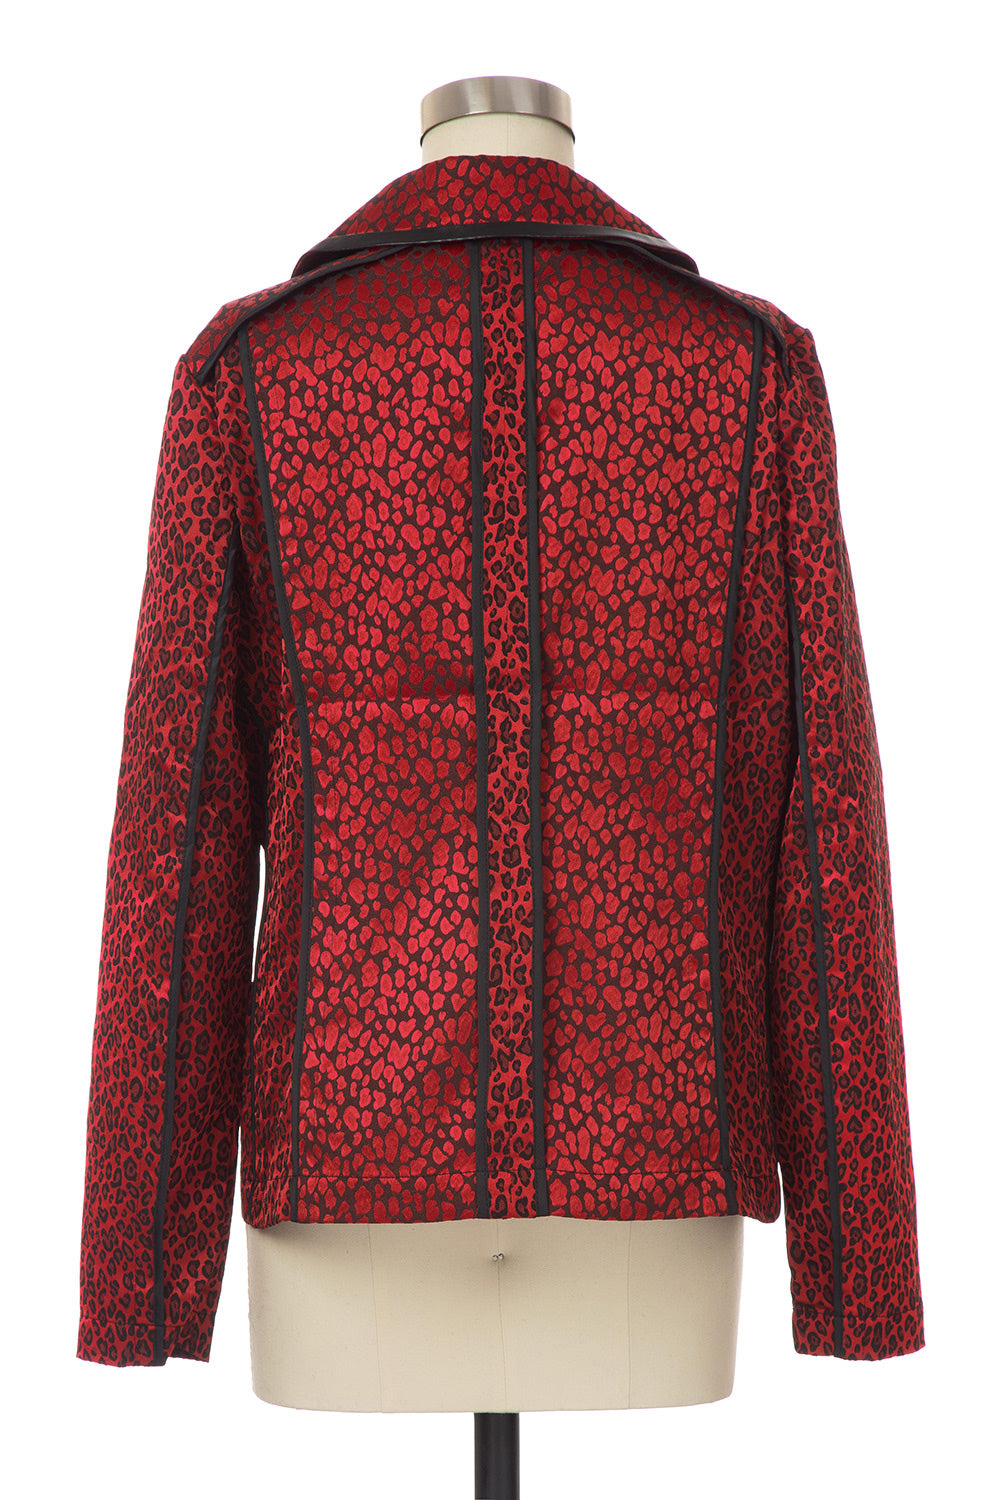 Type 4 Satin Leopard Jacket